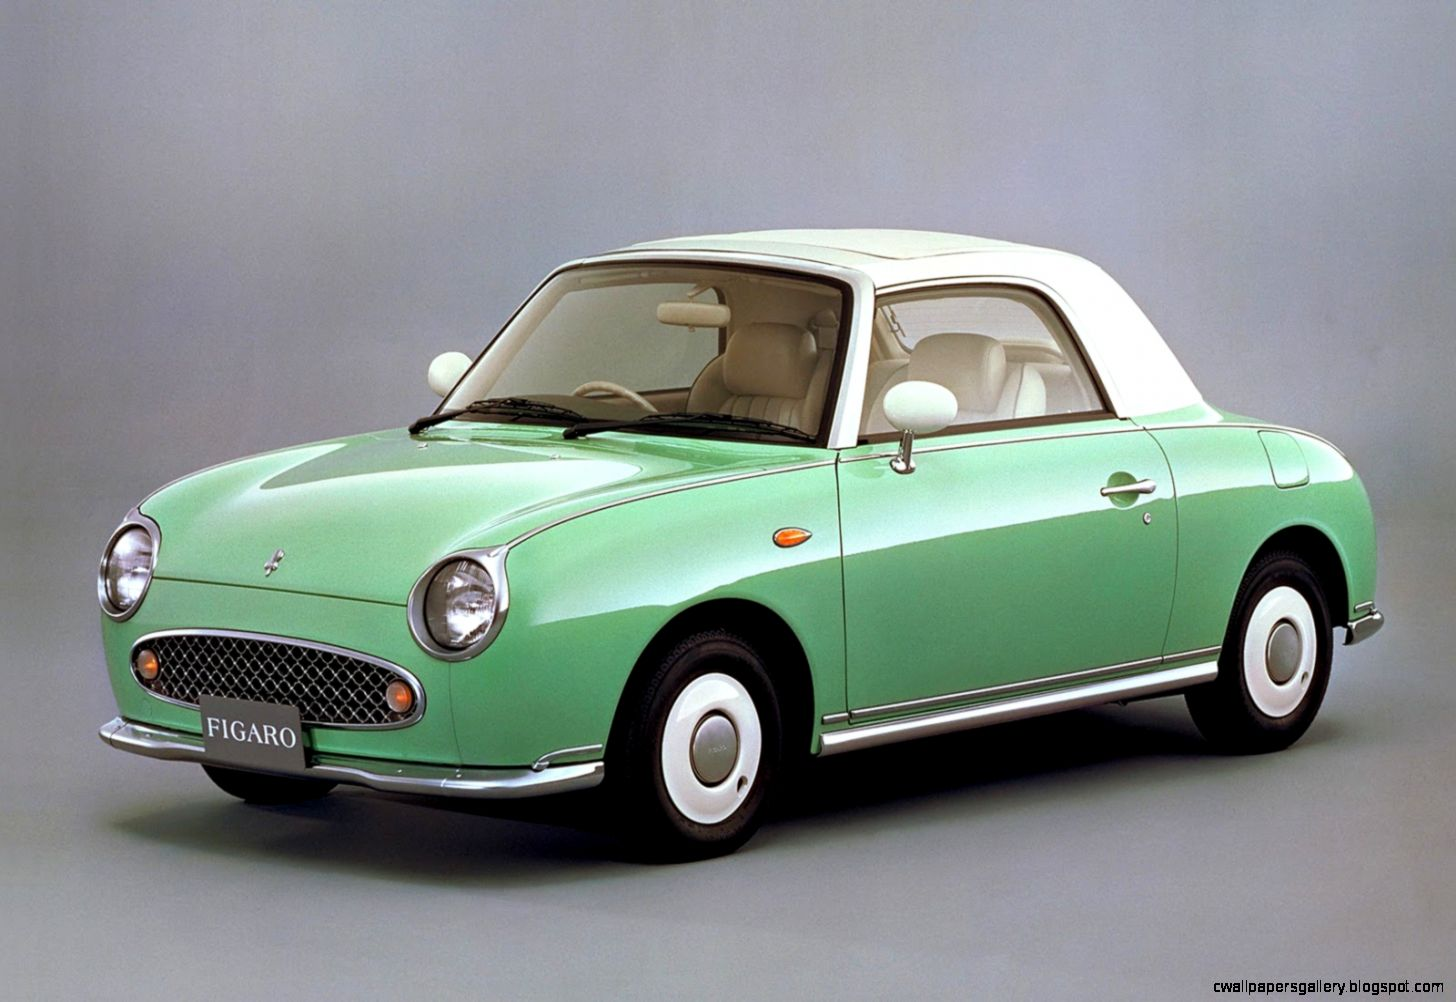 Nissan Figaro 1989 Japanese Classic Car images and Review  LUXURY